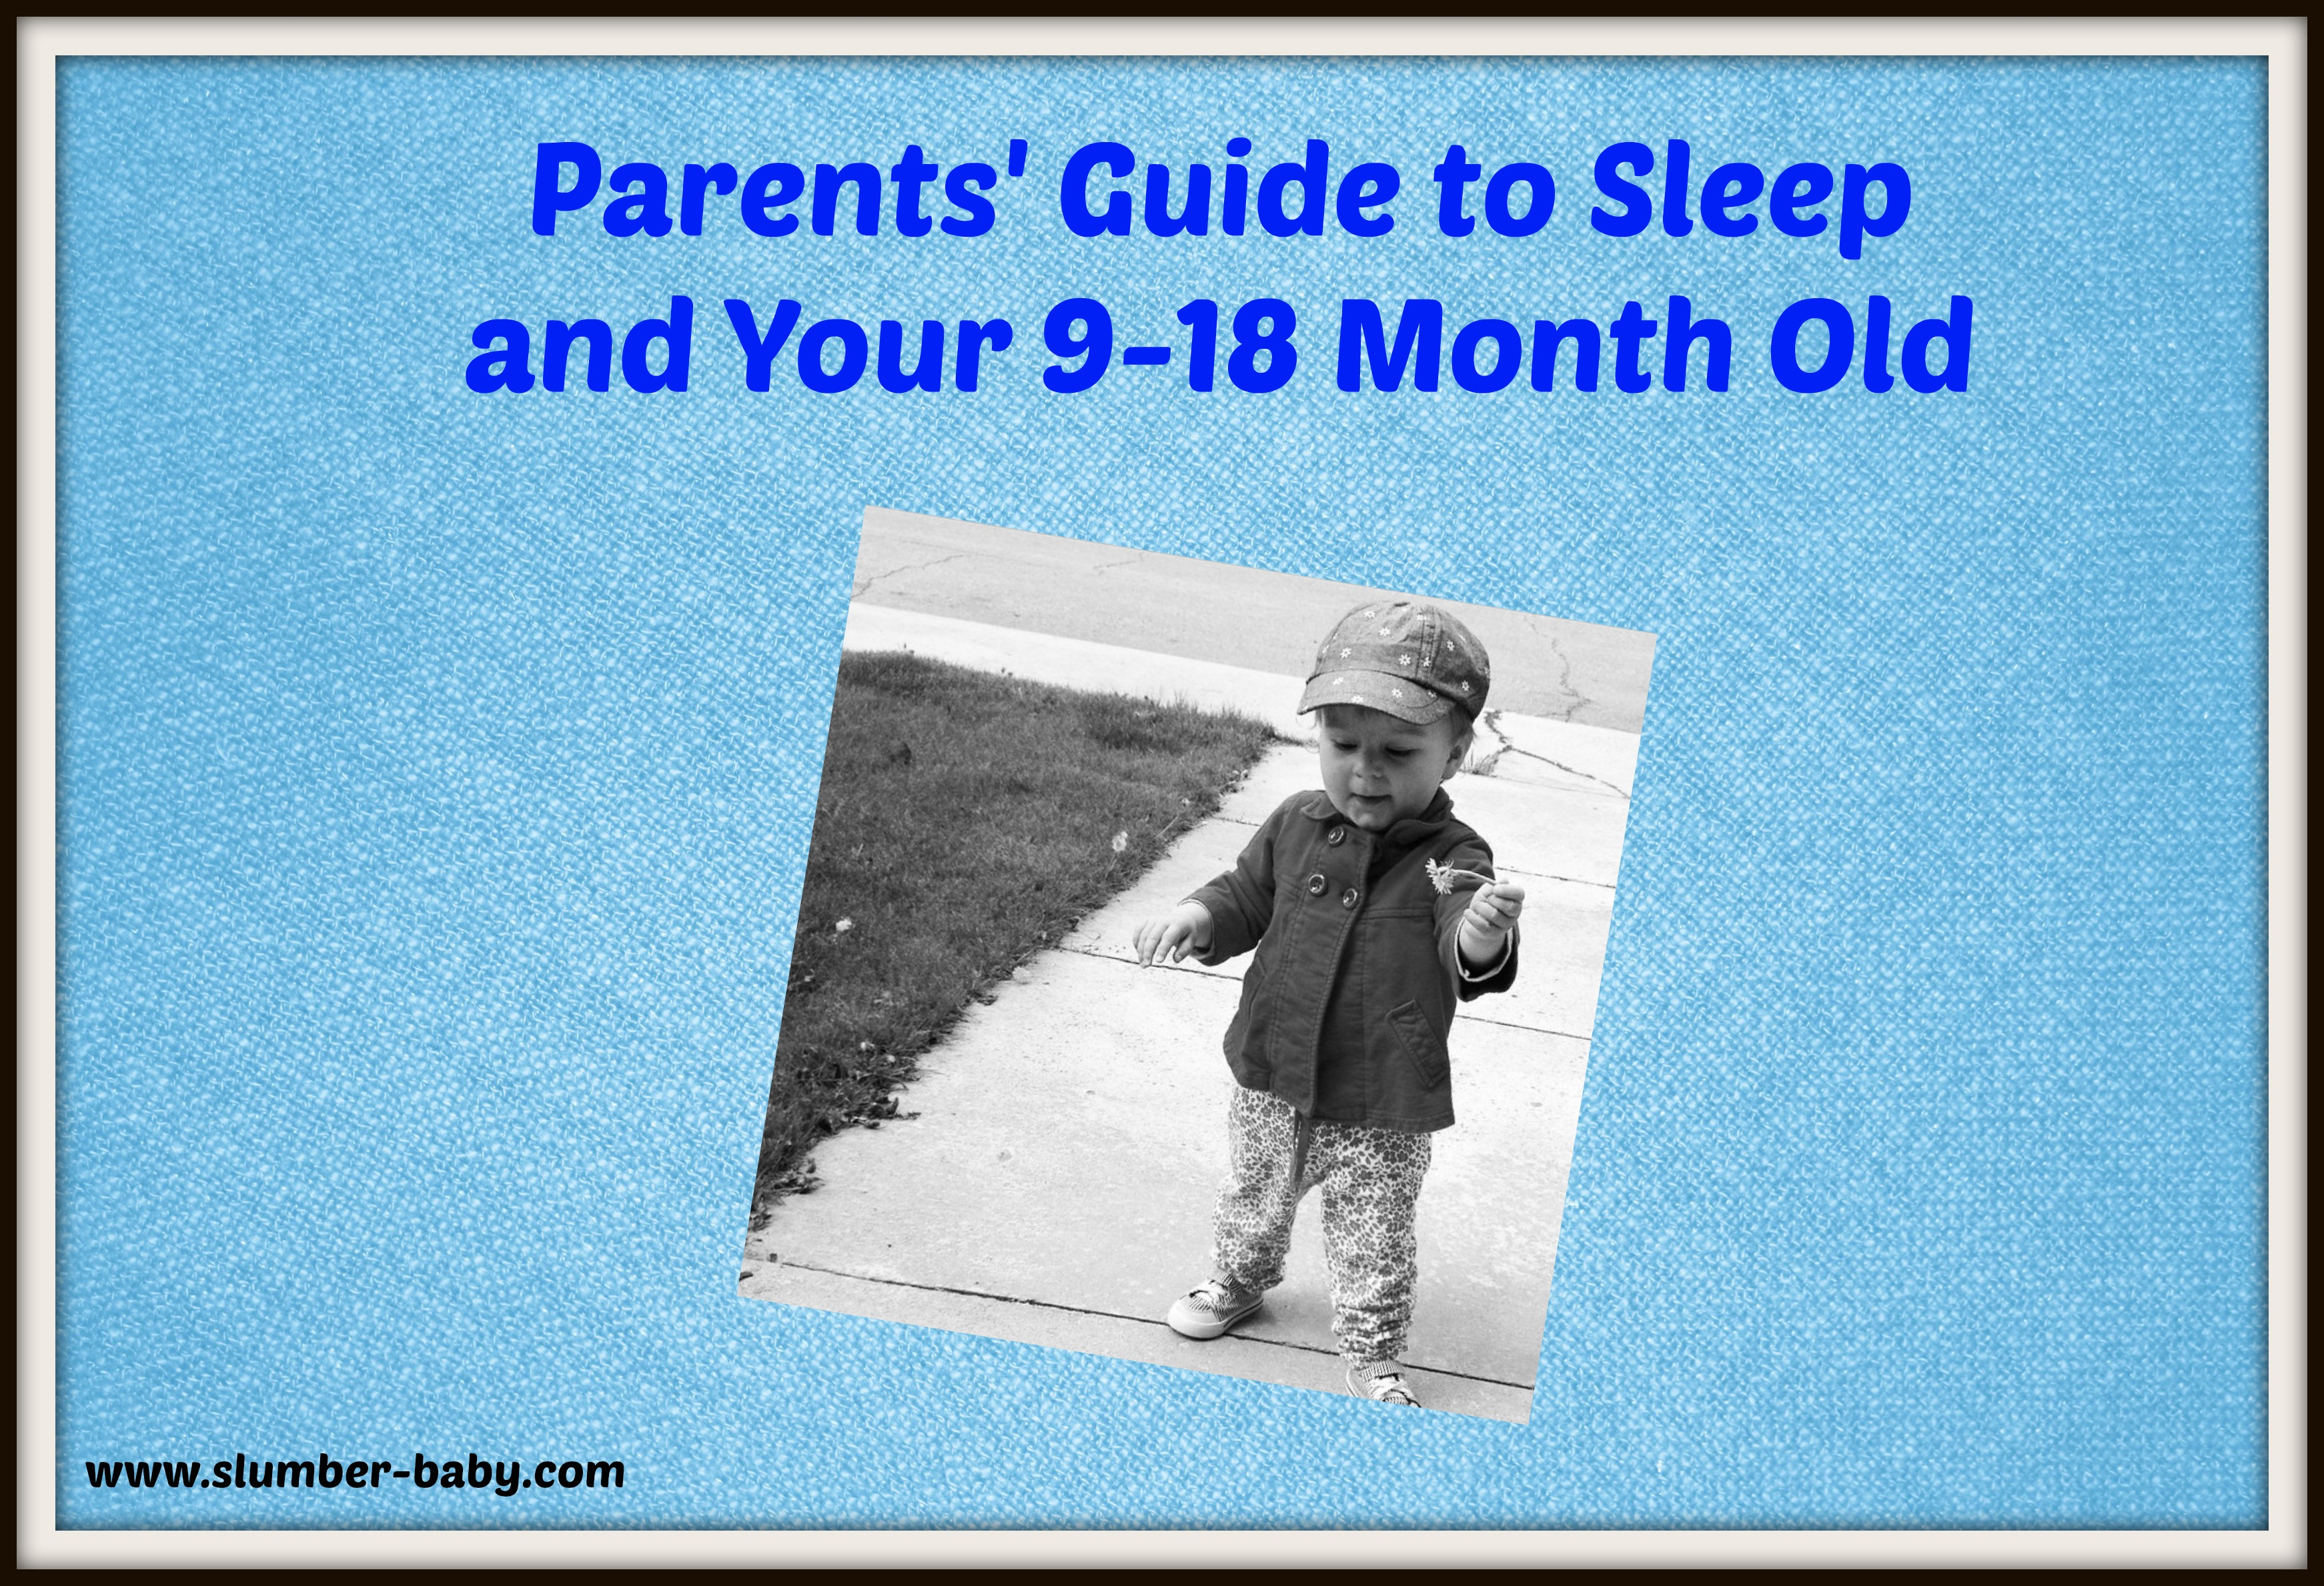 Parents' Guide to Sleep and Your 9-18 month Old